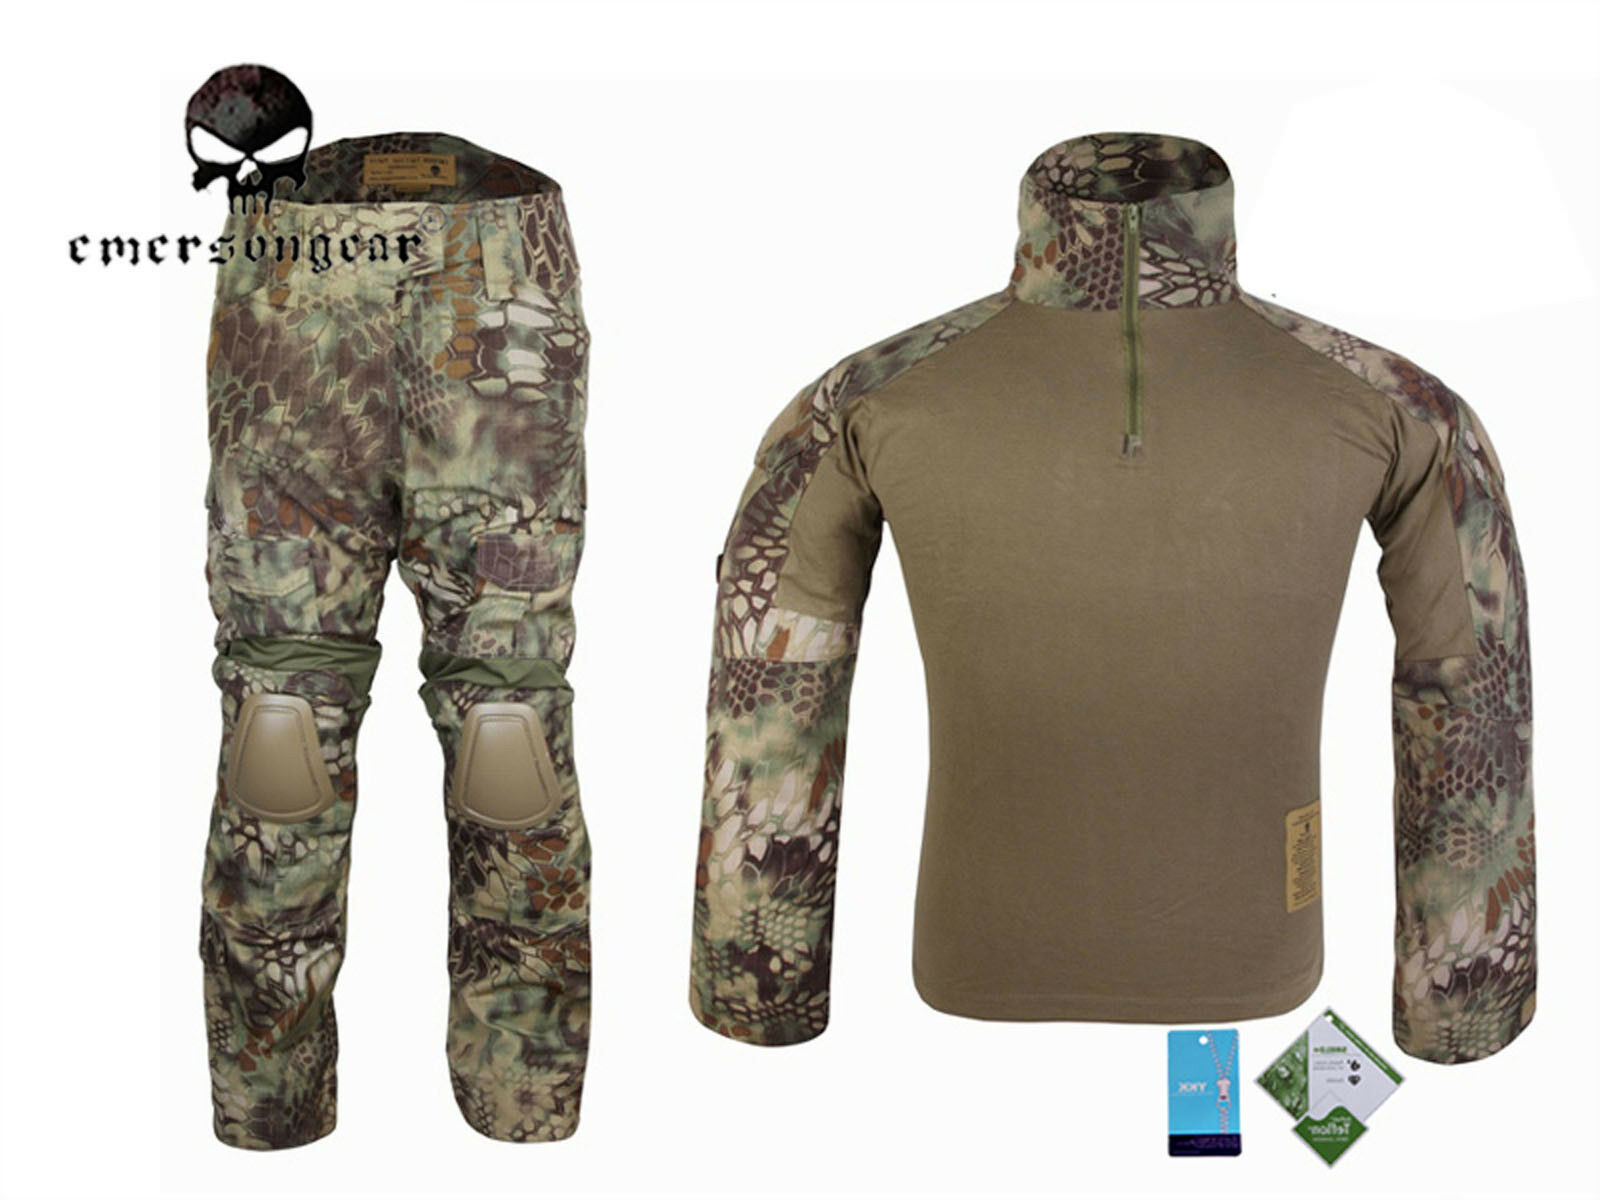 EMERSON Gen2 Cype Style Combat Uniform Tactical Hunting Uniform BDU  Mandrake  shop clearance